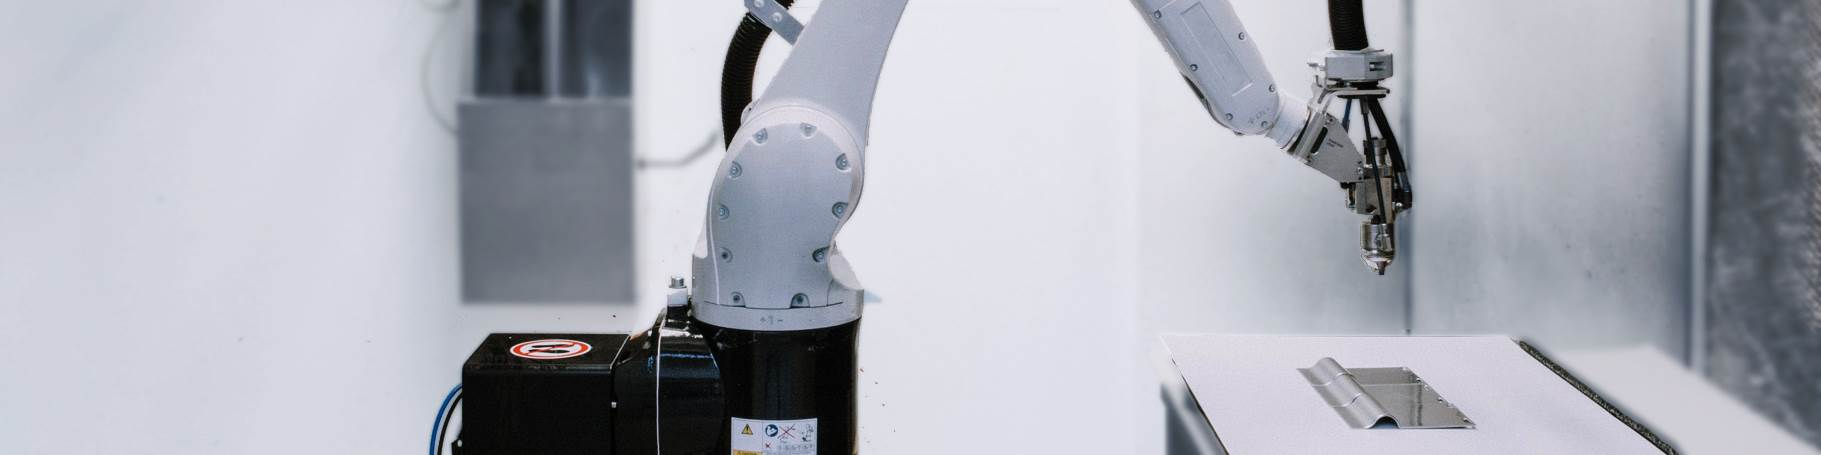 Compact Painting Robot Enables Innovative Paint Systems